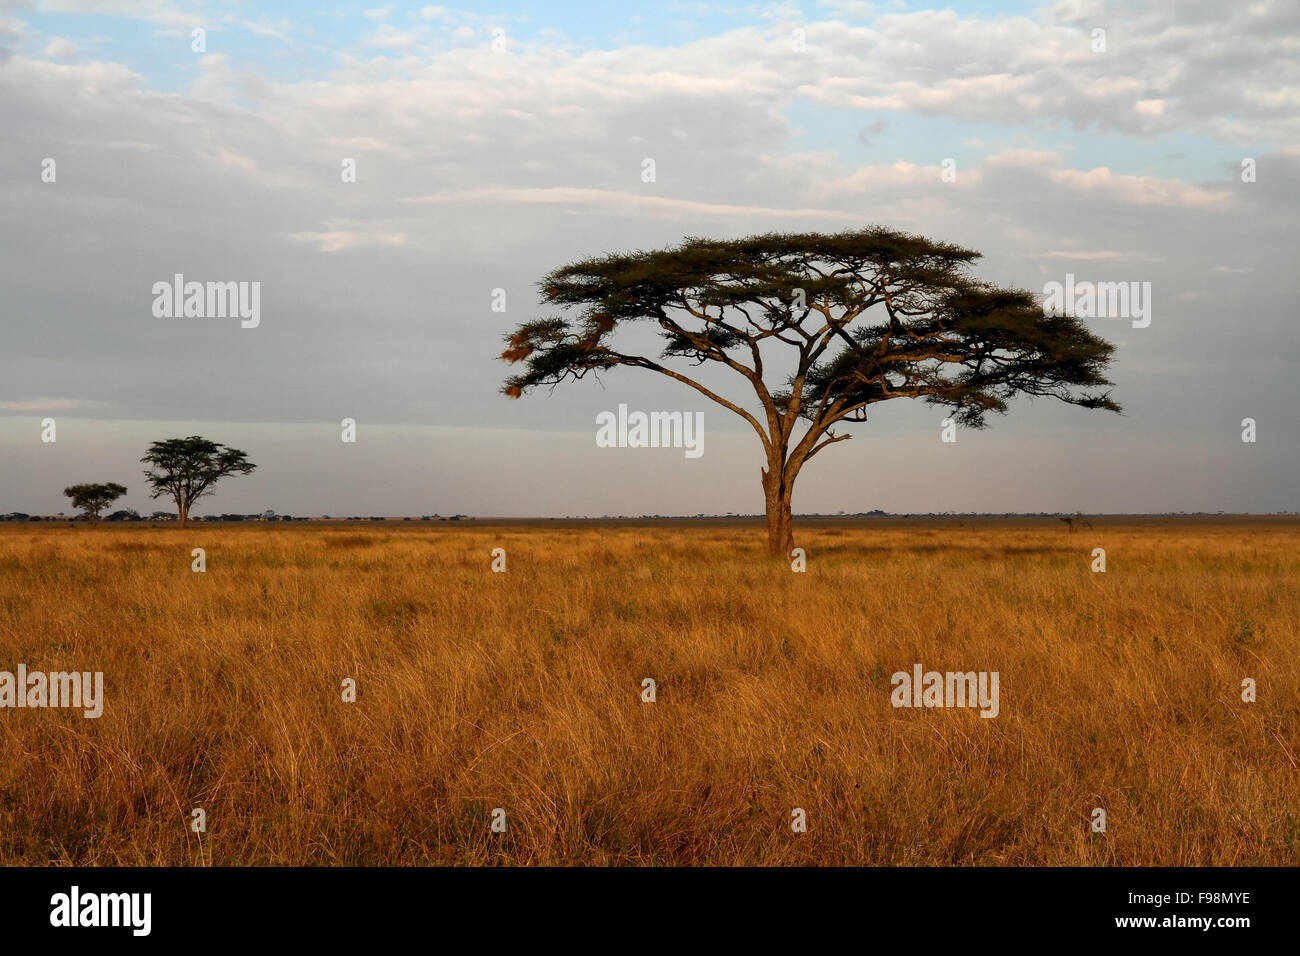 Acacia trees staggered across the African grasslands savannah - Stock Image